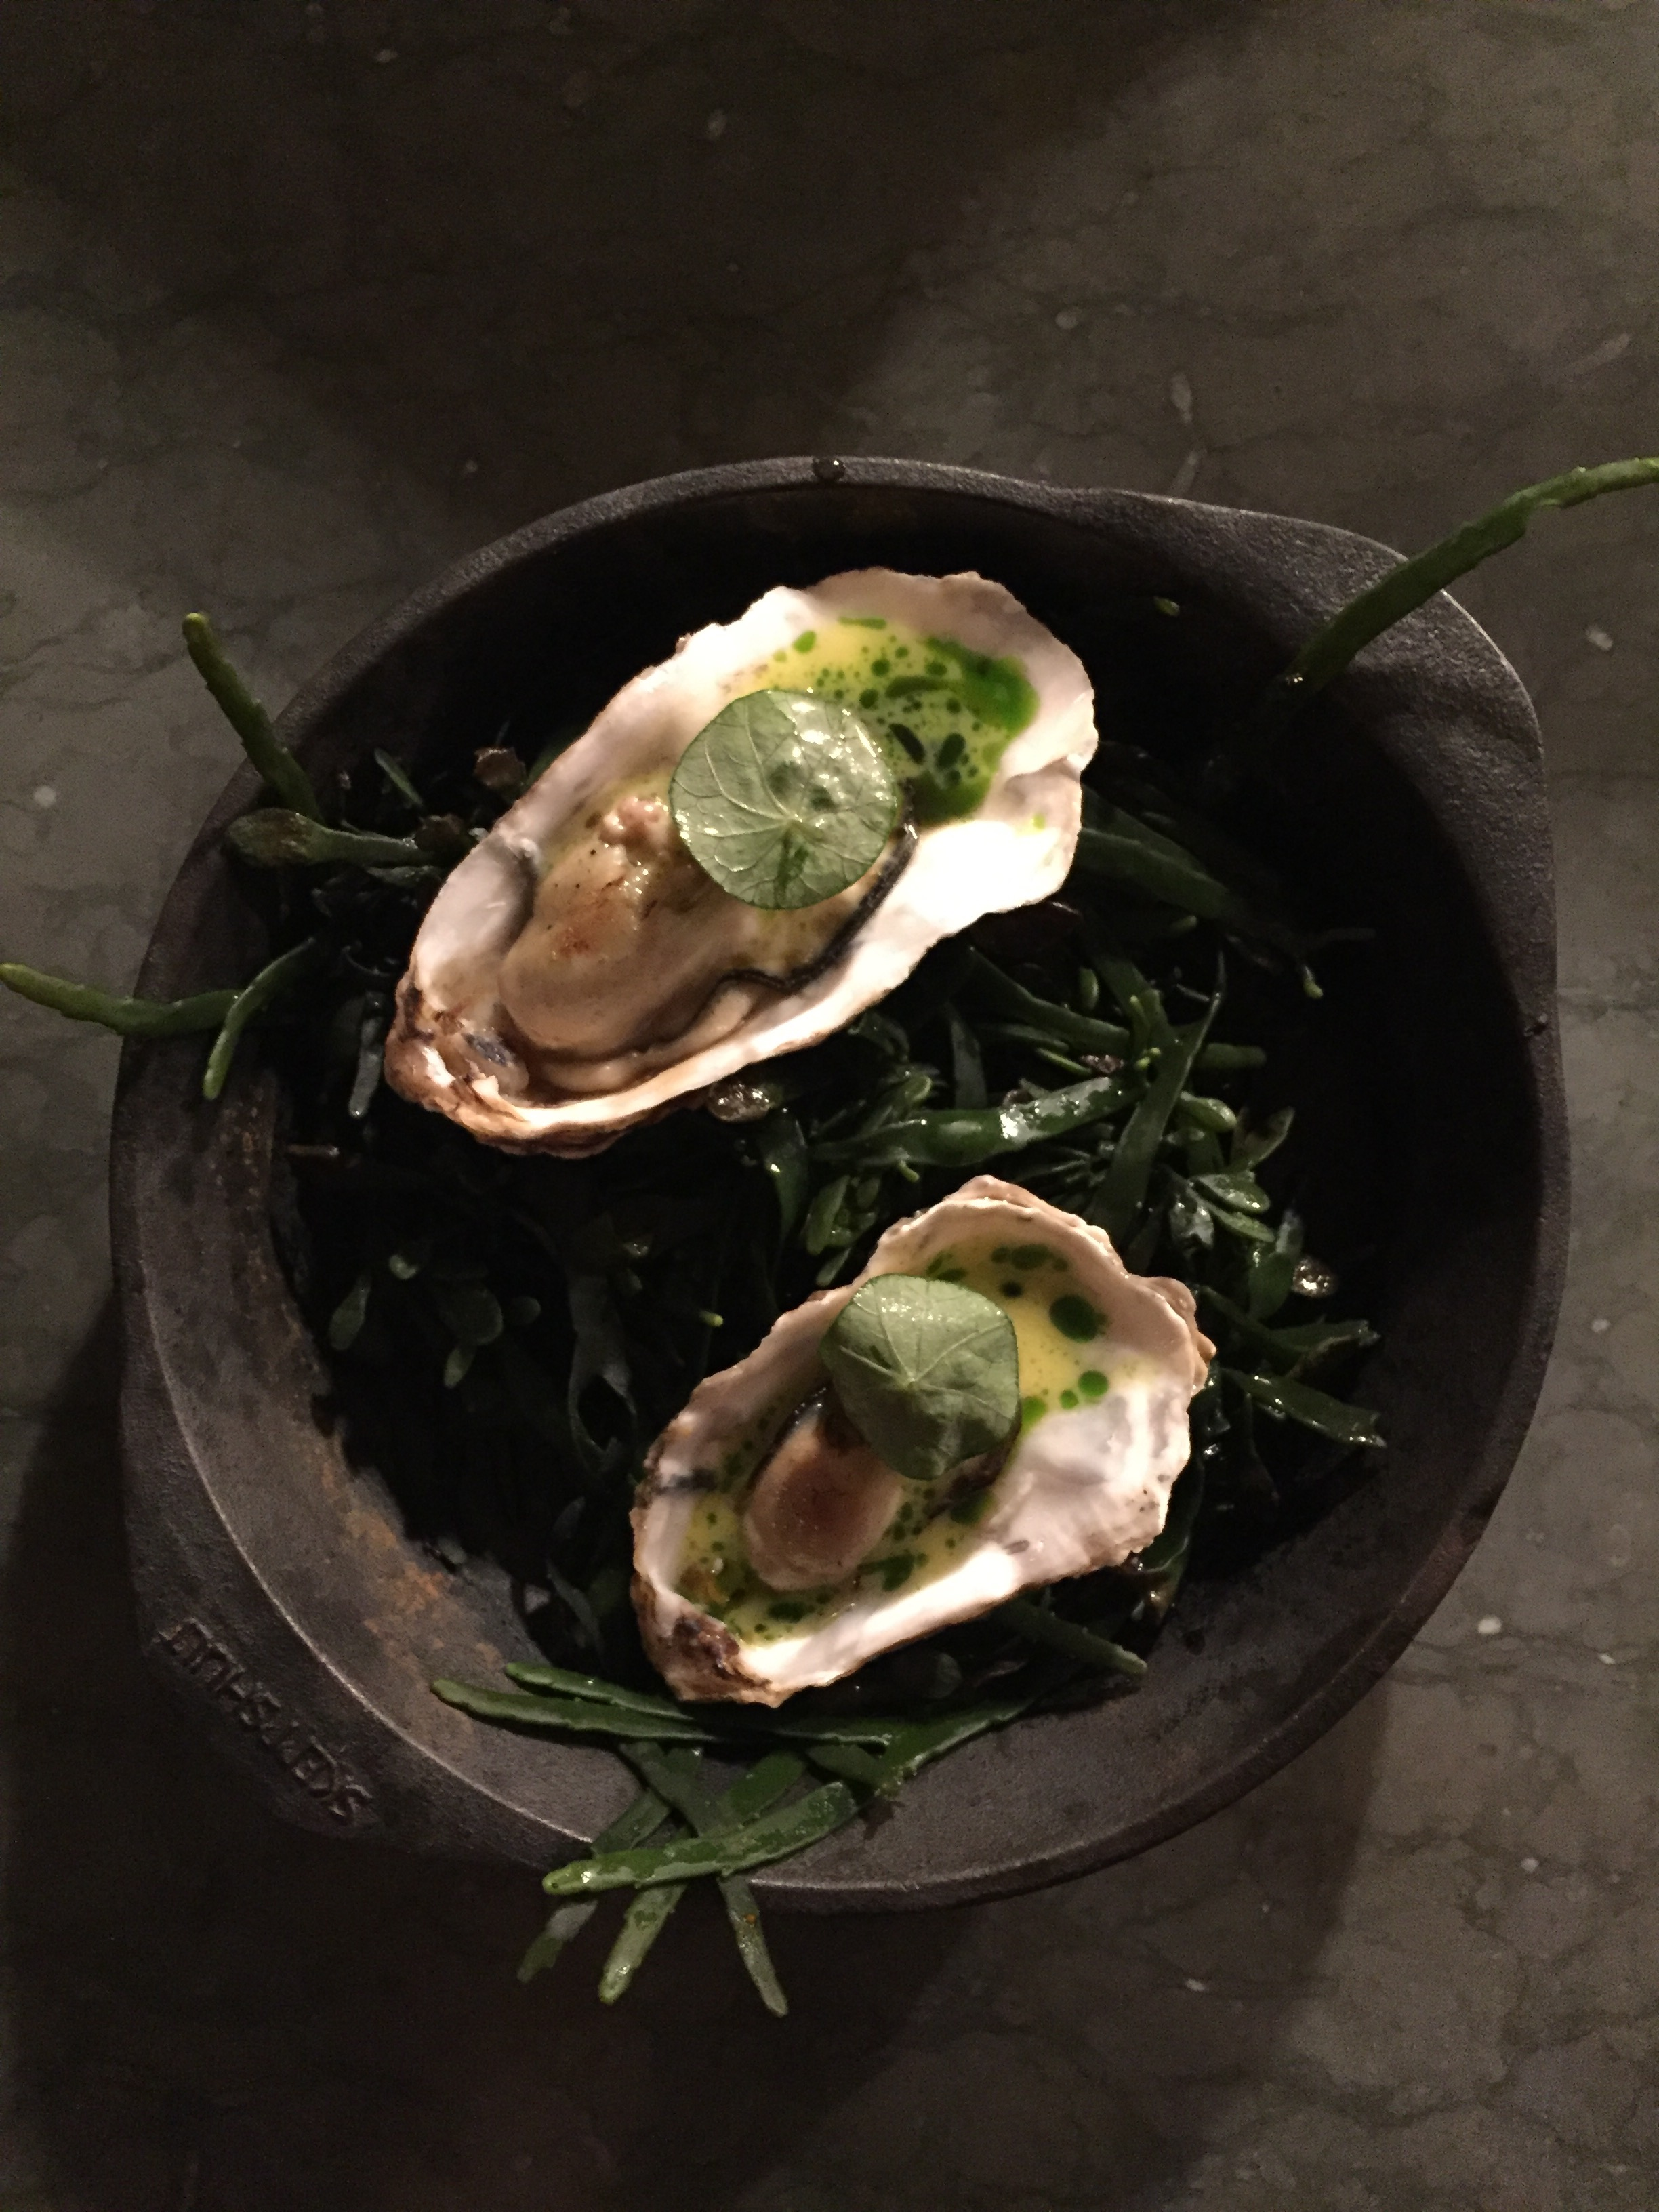 ekstedt flamed oysters 3